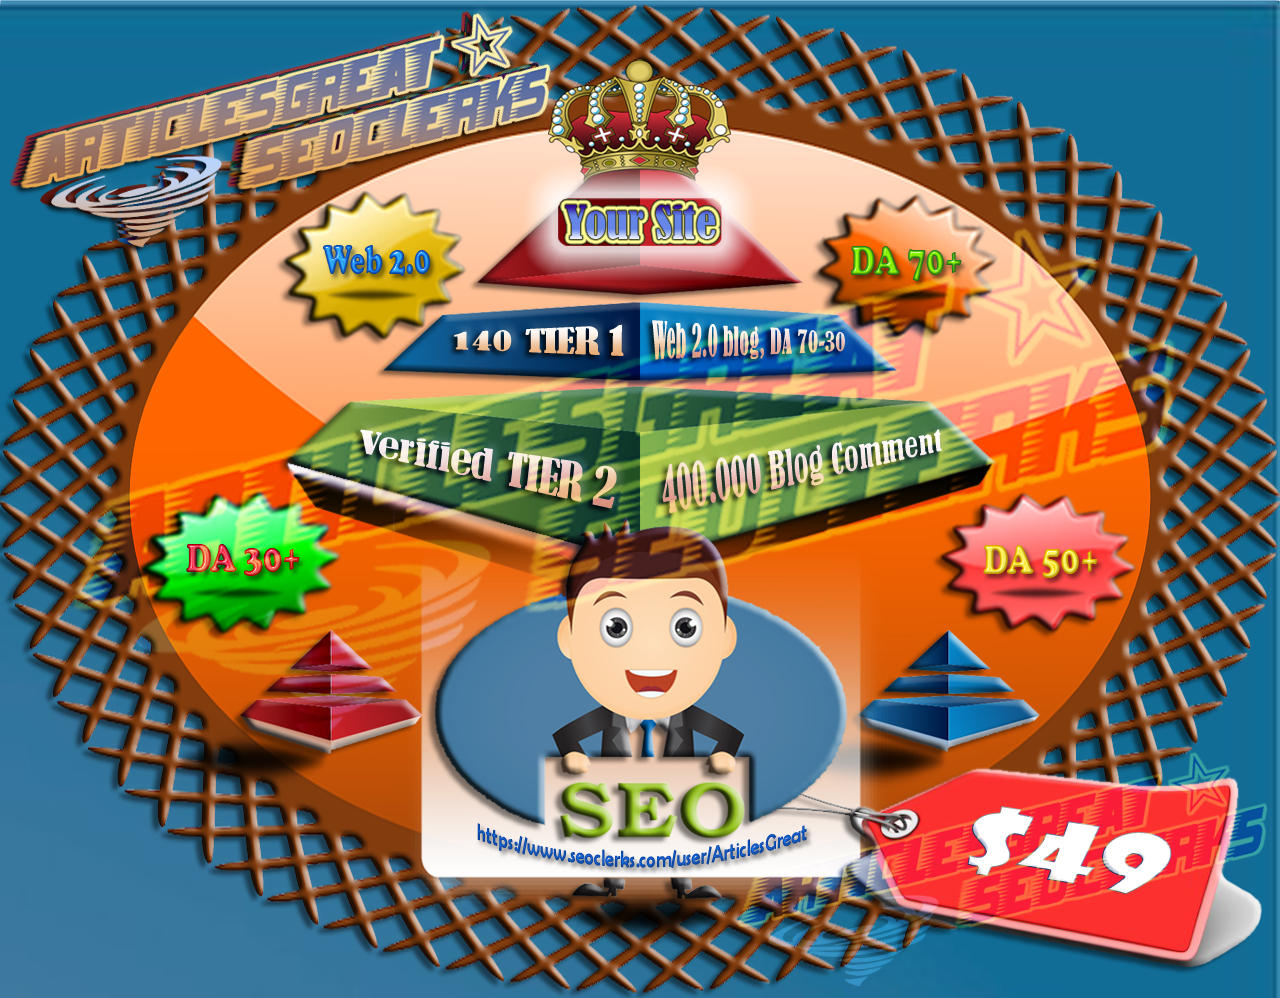 250 PBN Indexed Backlink Web 2.0 Blog DA 90 + Login Account